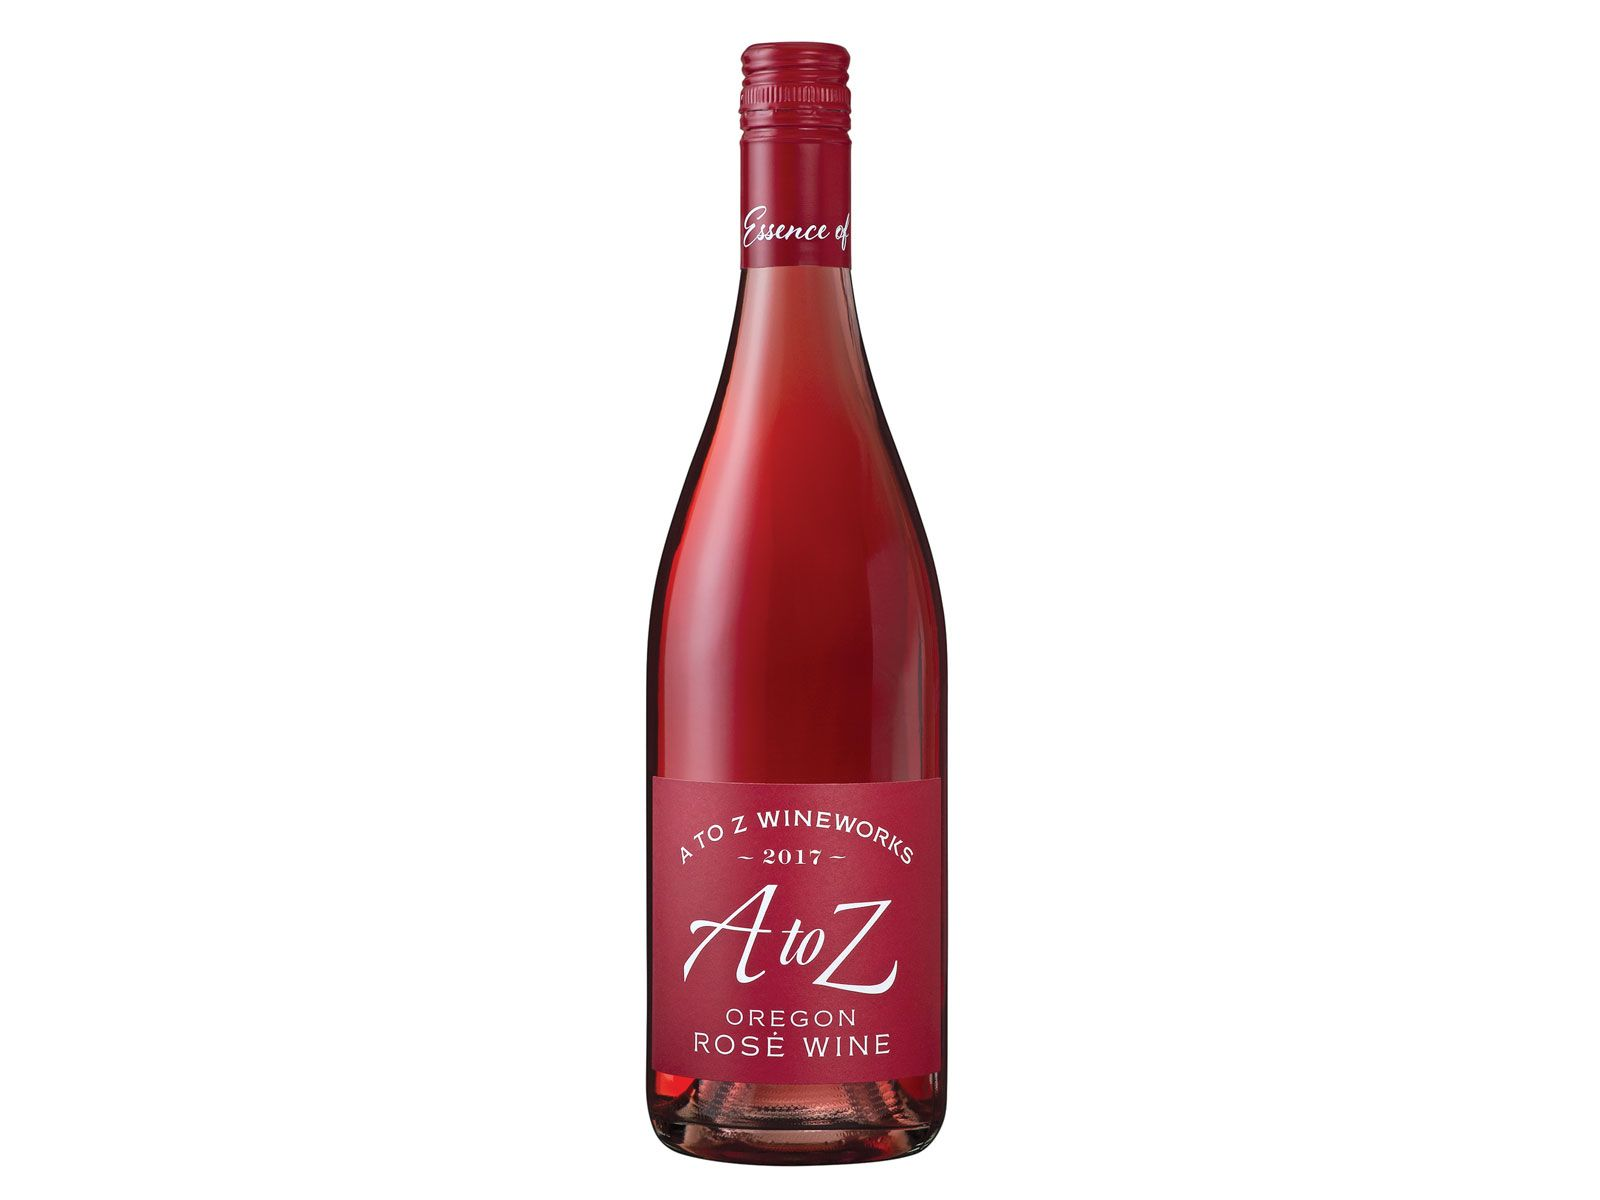 30 Roses To Drink This Summer It S Time To Think Pink Again Here Are 30 Mouthwatering Bottles To Help Beat The Heat Wine And Spirits Wine Bottle Wine